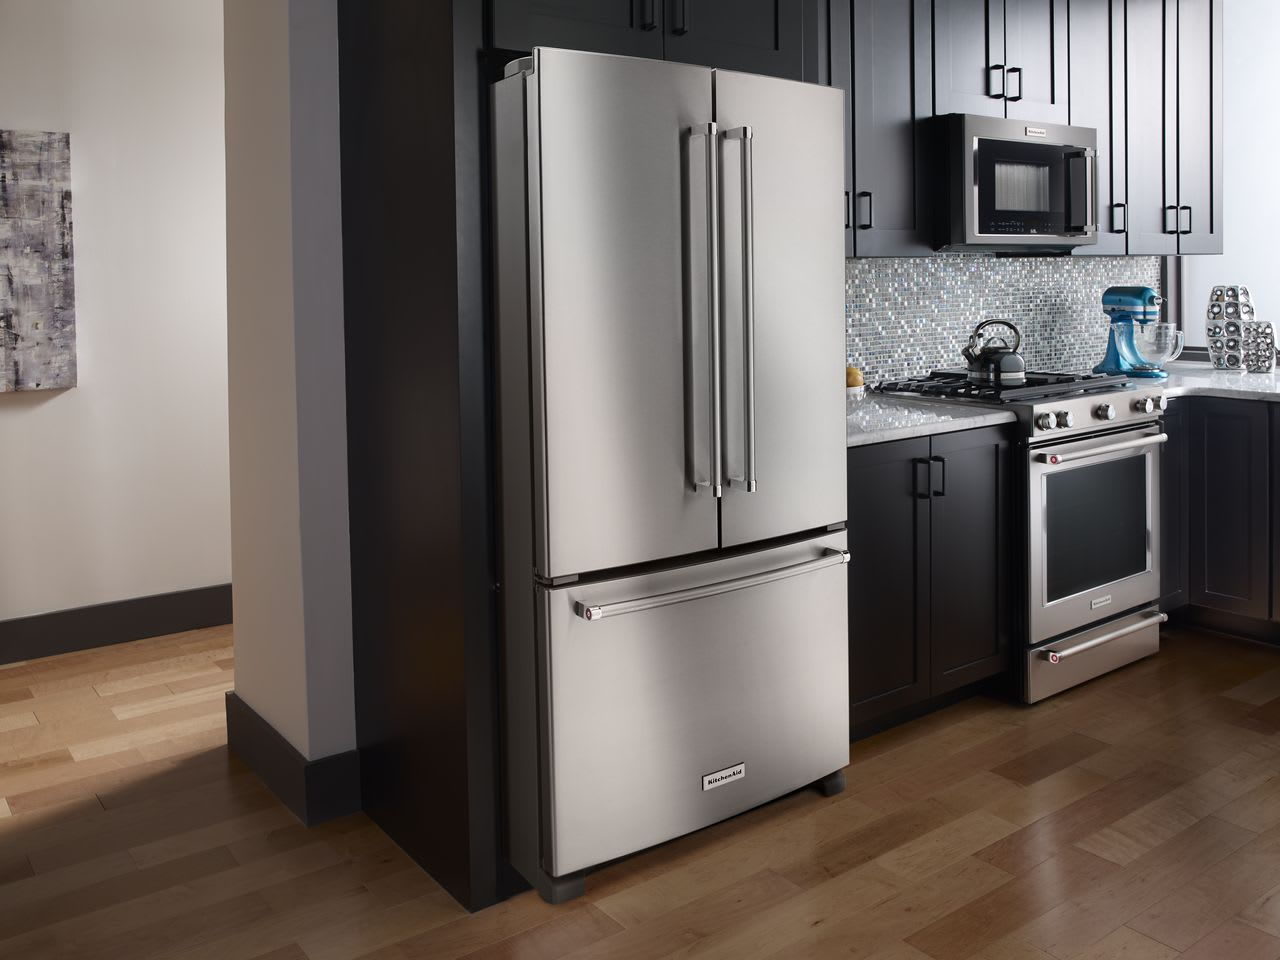 Kuche Bar Fridge Review 10 Best Refrigerators Malaysia 2019 Top Fridge Reviews